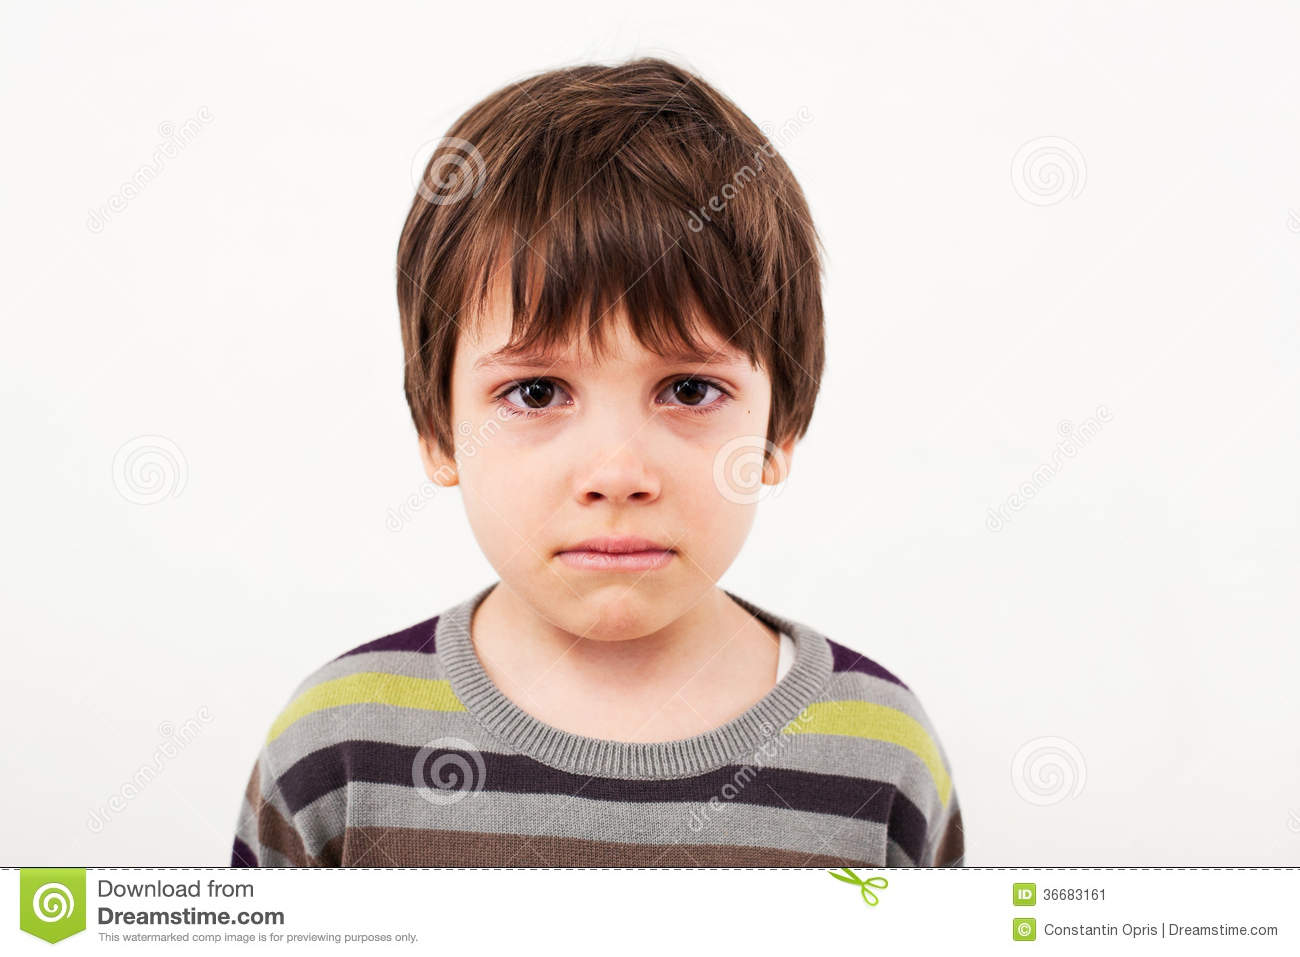 Sad Child Face Stock Image - Image: 36683161